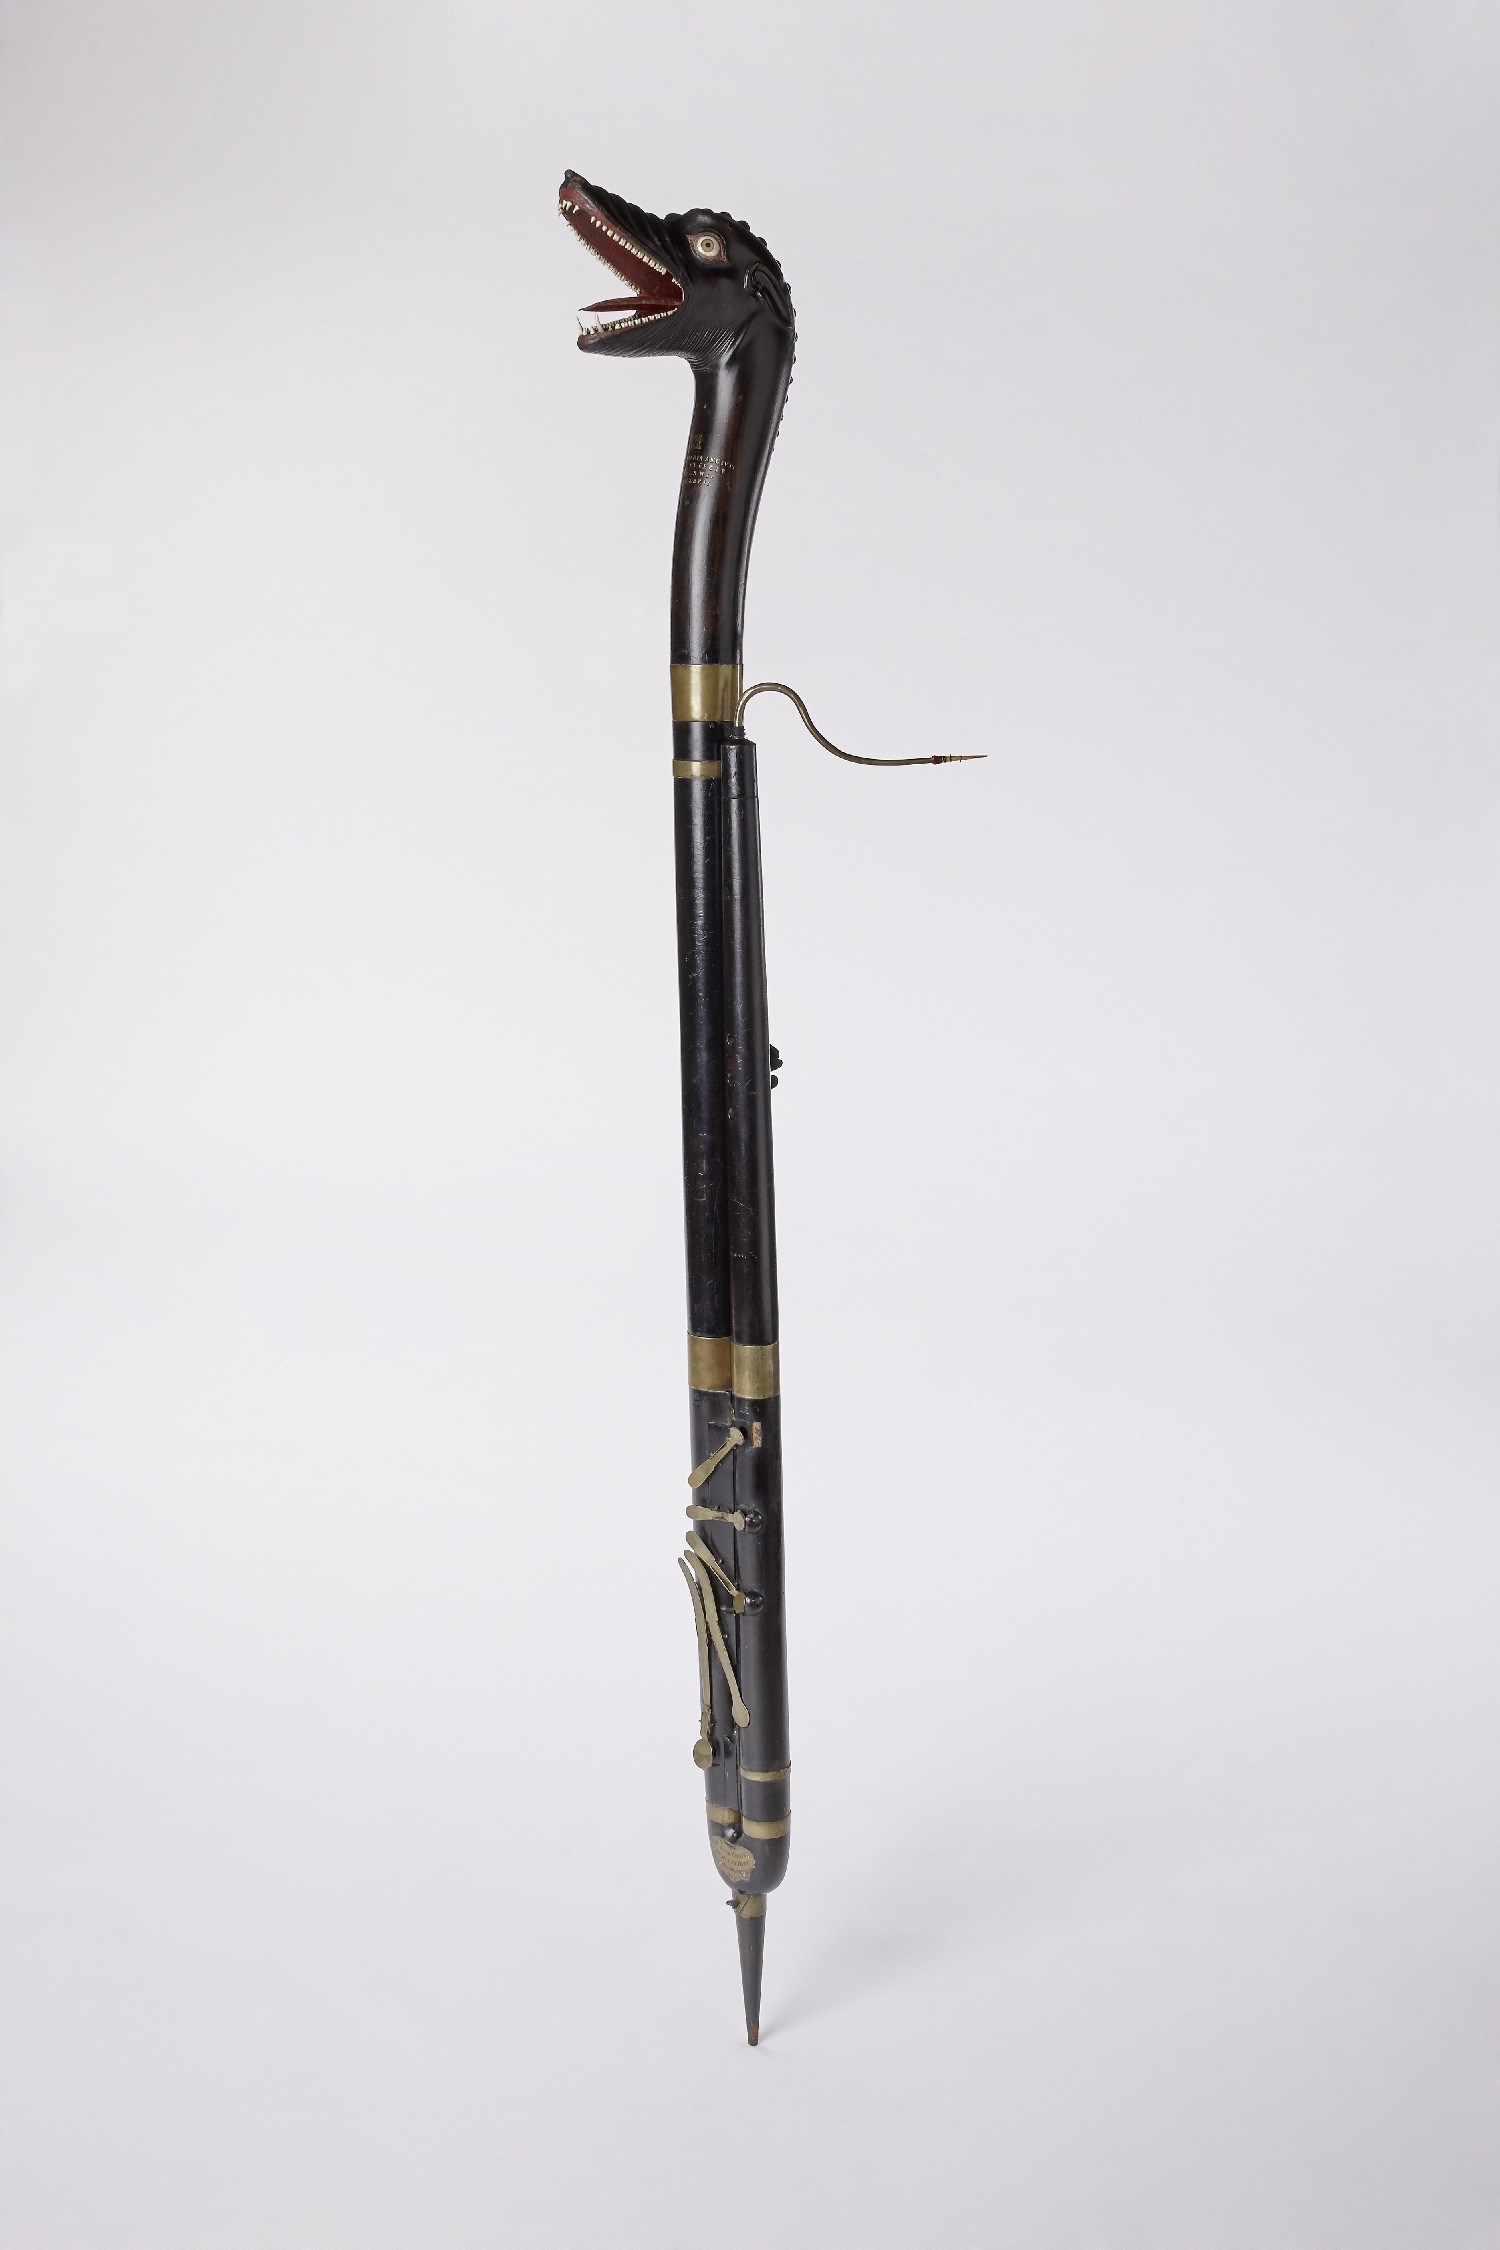 Contrabassoon, Joannes Maria Anciuti, Milan, 1732, wood (maple), brass, paper, glass, inv. no. MI 1247